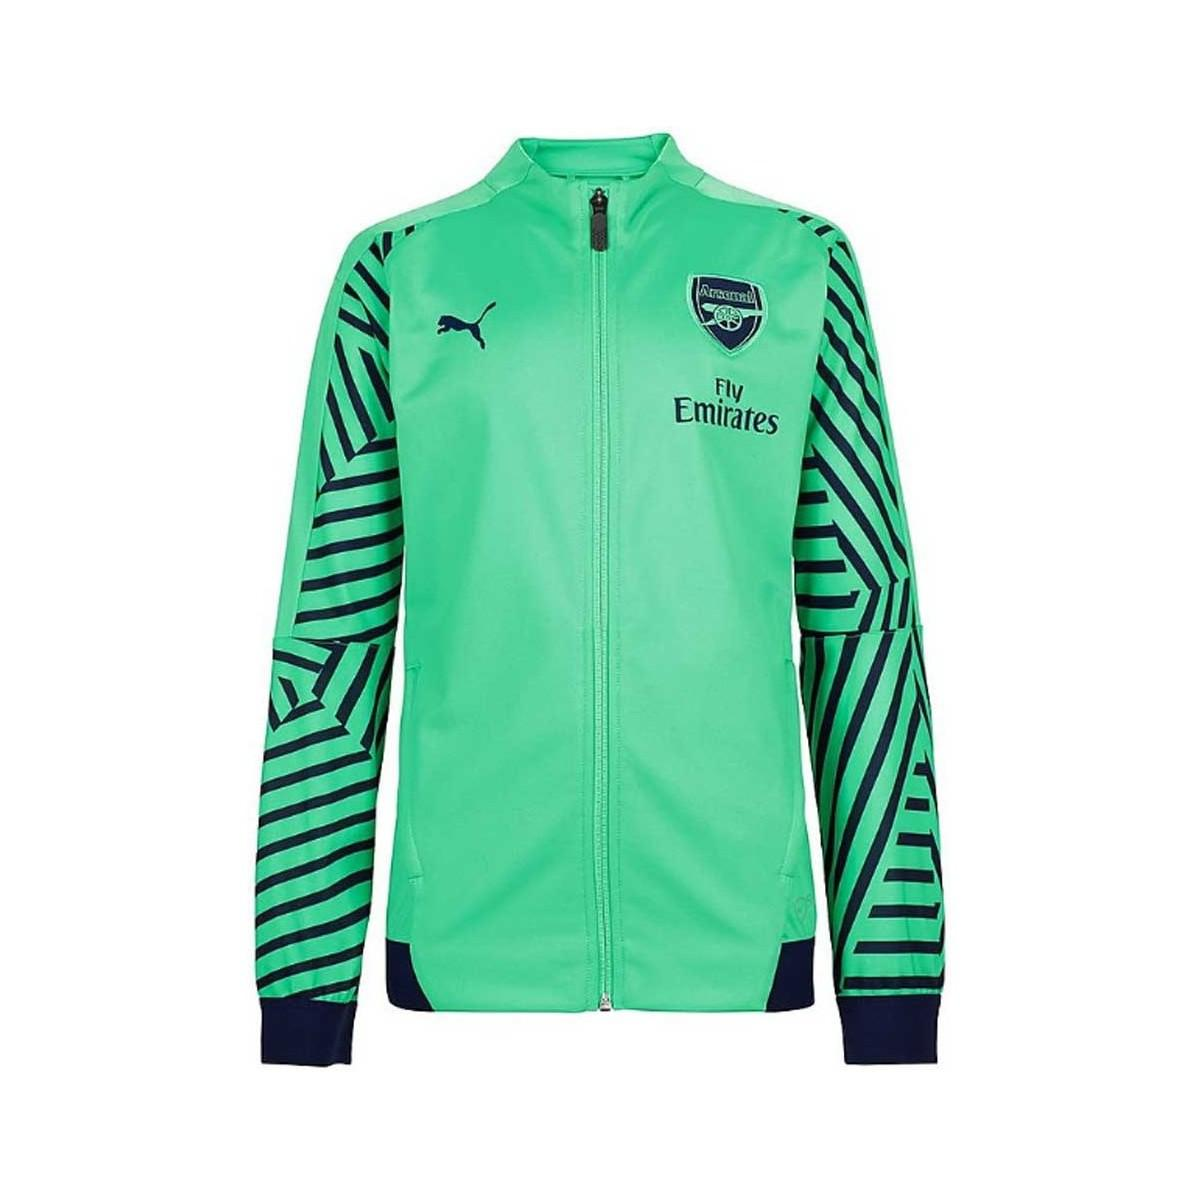 805ff159709c PUMA 2018-2019 Arsenal Stadium Jacket Men s Tracksuit Jacket In ...